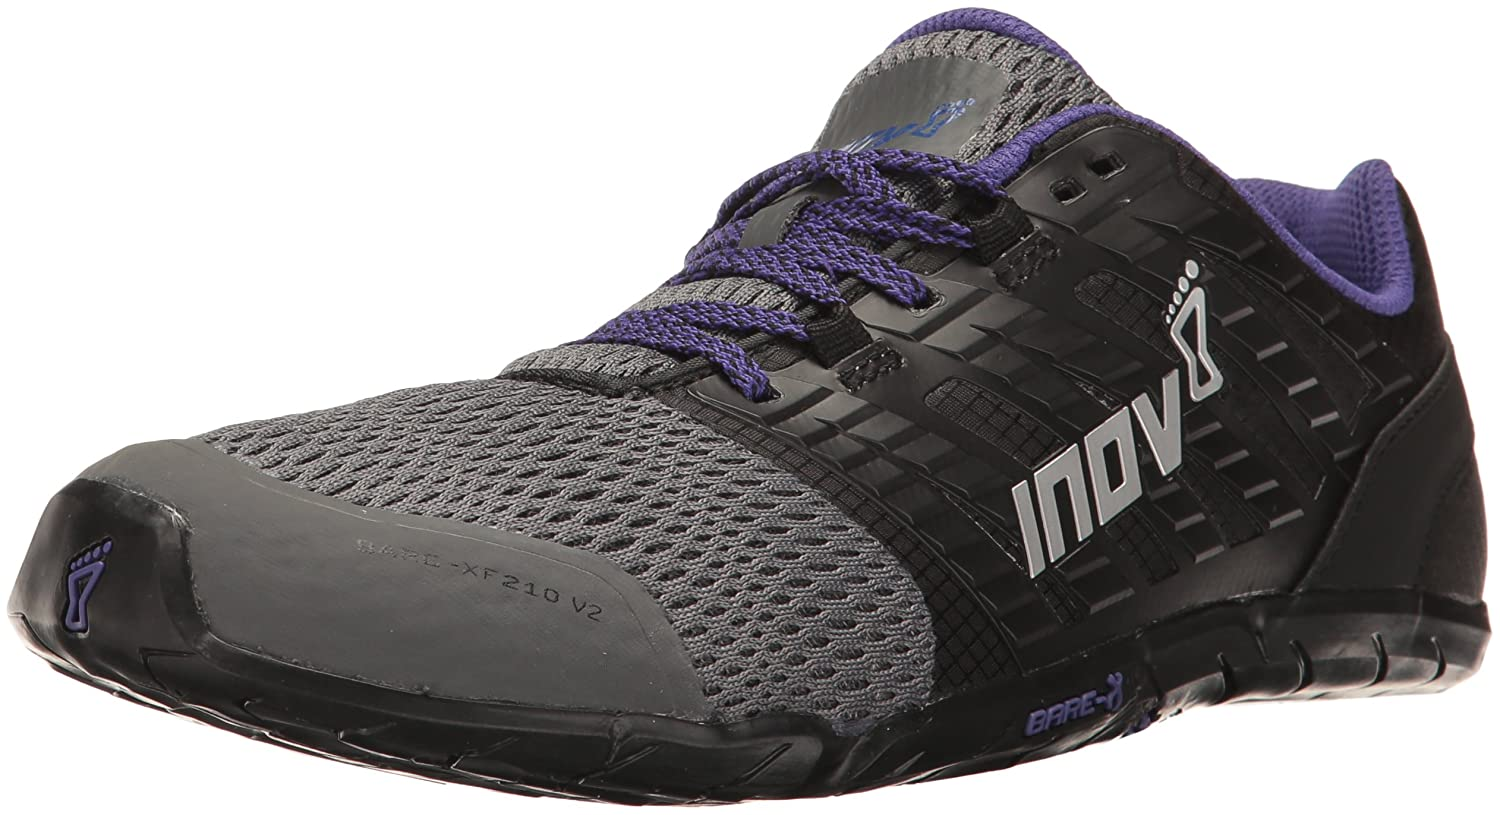 Inov-8 Women's Bare-XF 210 V2 Sneaker B01N1710I2 9.5 B(M) US|Grey/Black/Purple